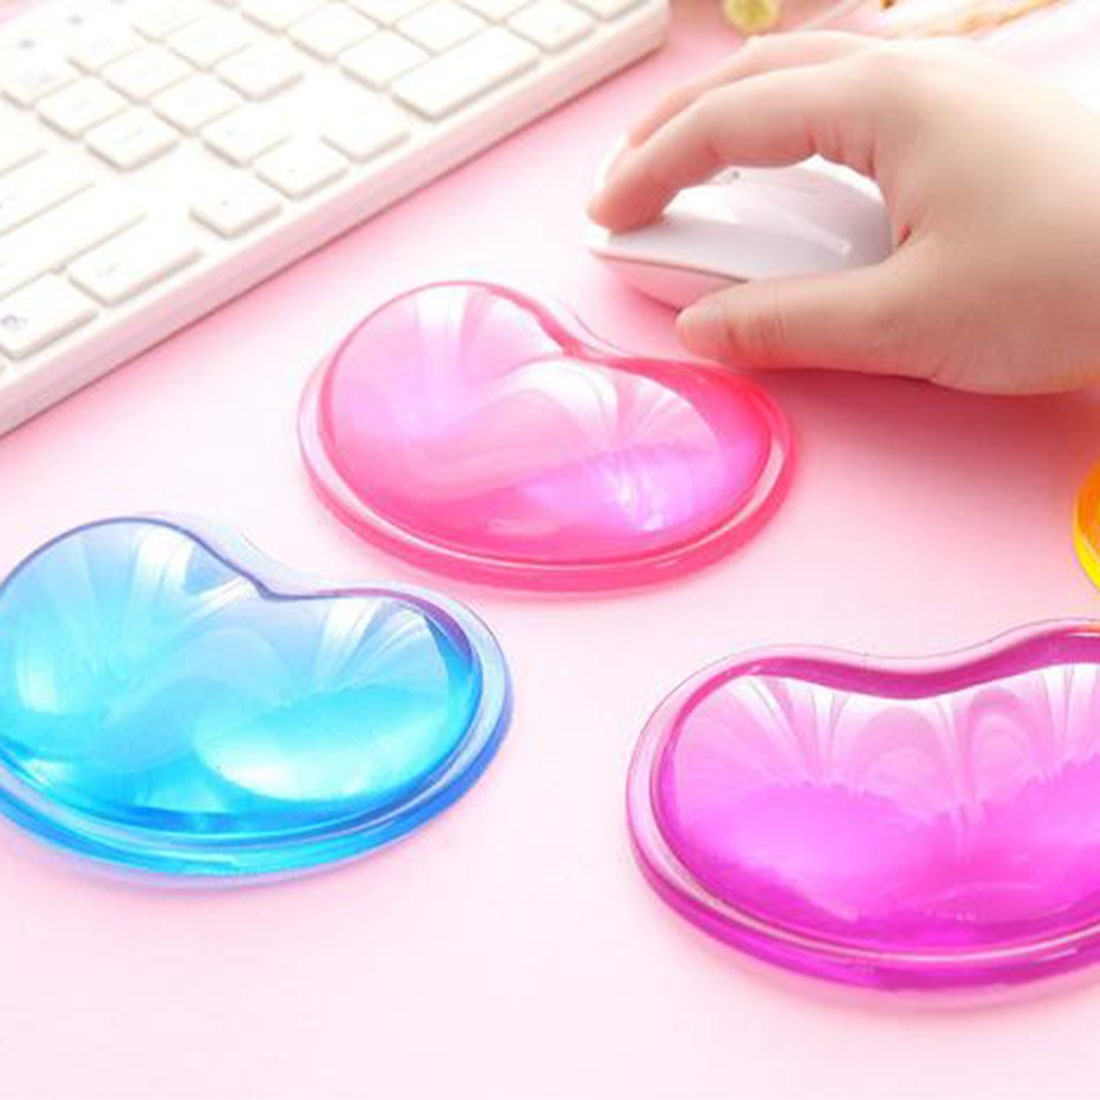 NOYOKERE Top Quality Heart Silicon Mouse Pad Clear Wristband Pad For Desktop Computer Mousepad Keyboard Support Helper